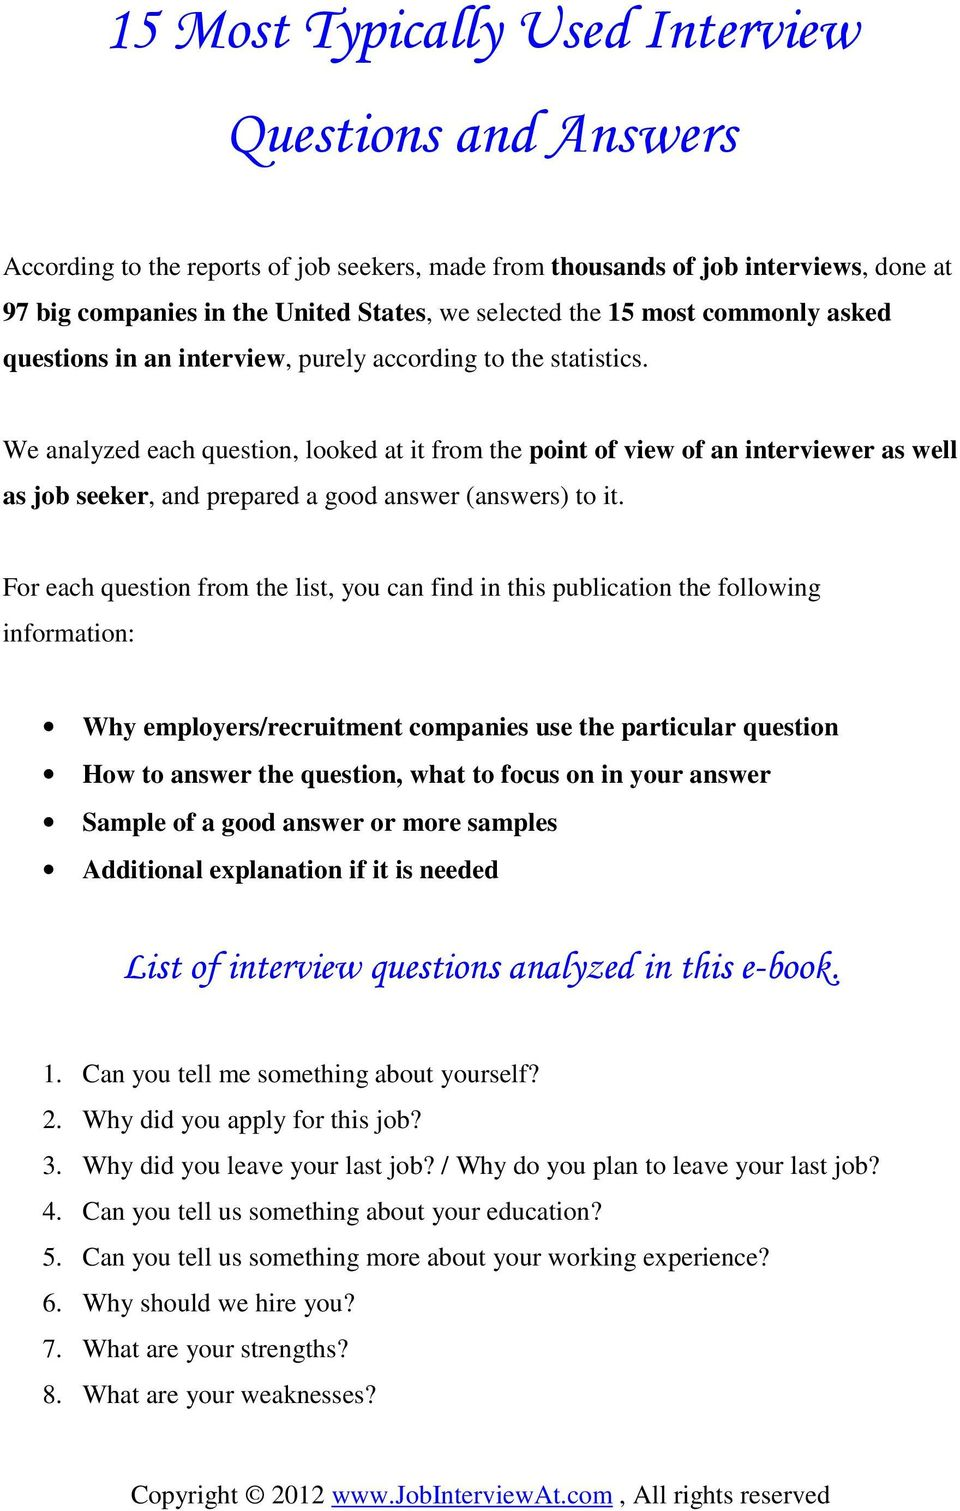 ccna interview questions and answers 2012 pdf free download